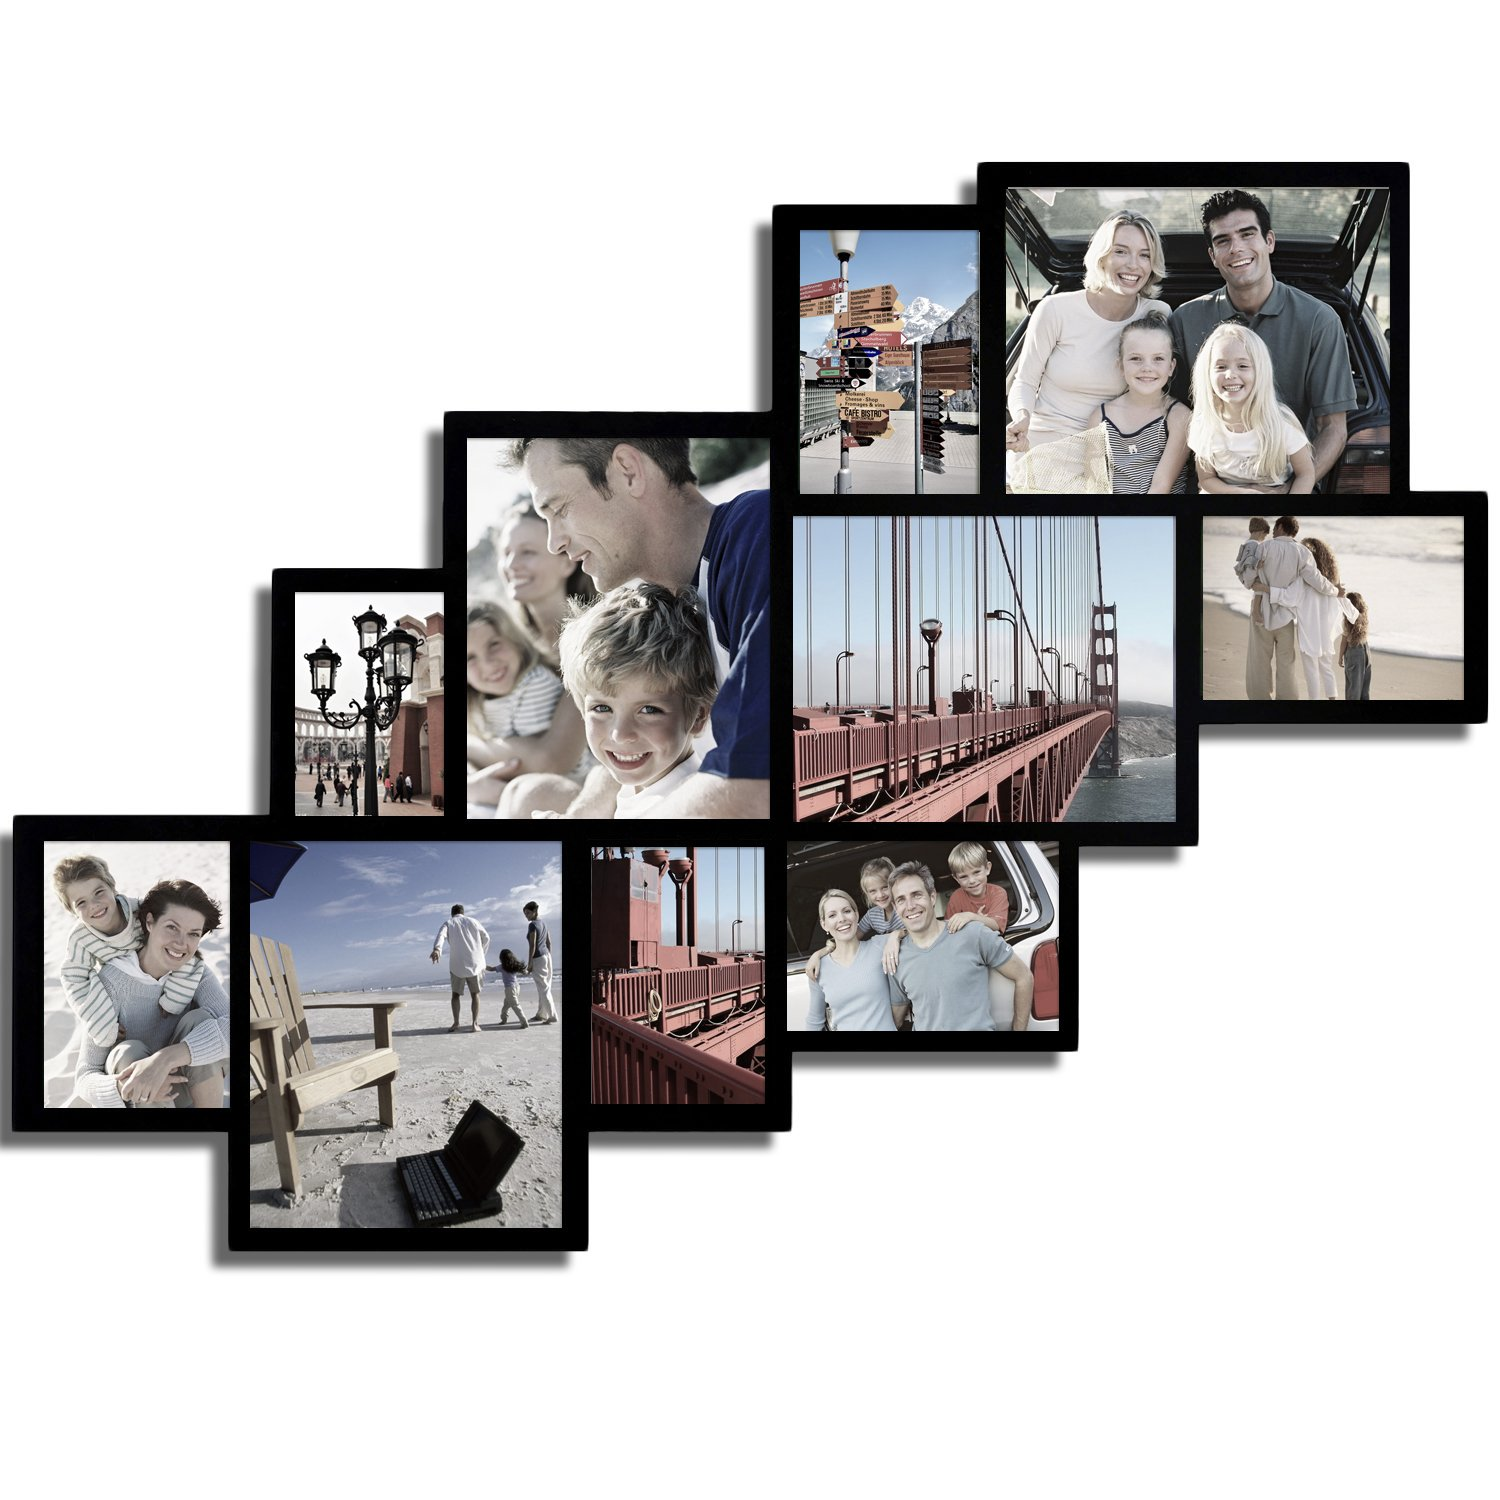 Amazon adeco decorative black wood wall hanging picture amazon adeco decorative black wood wall hanging picture photo frame collage 10 openings clustered various sizes 4 8x10 5 5x7 one 4x6 jeuxipadfo Images